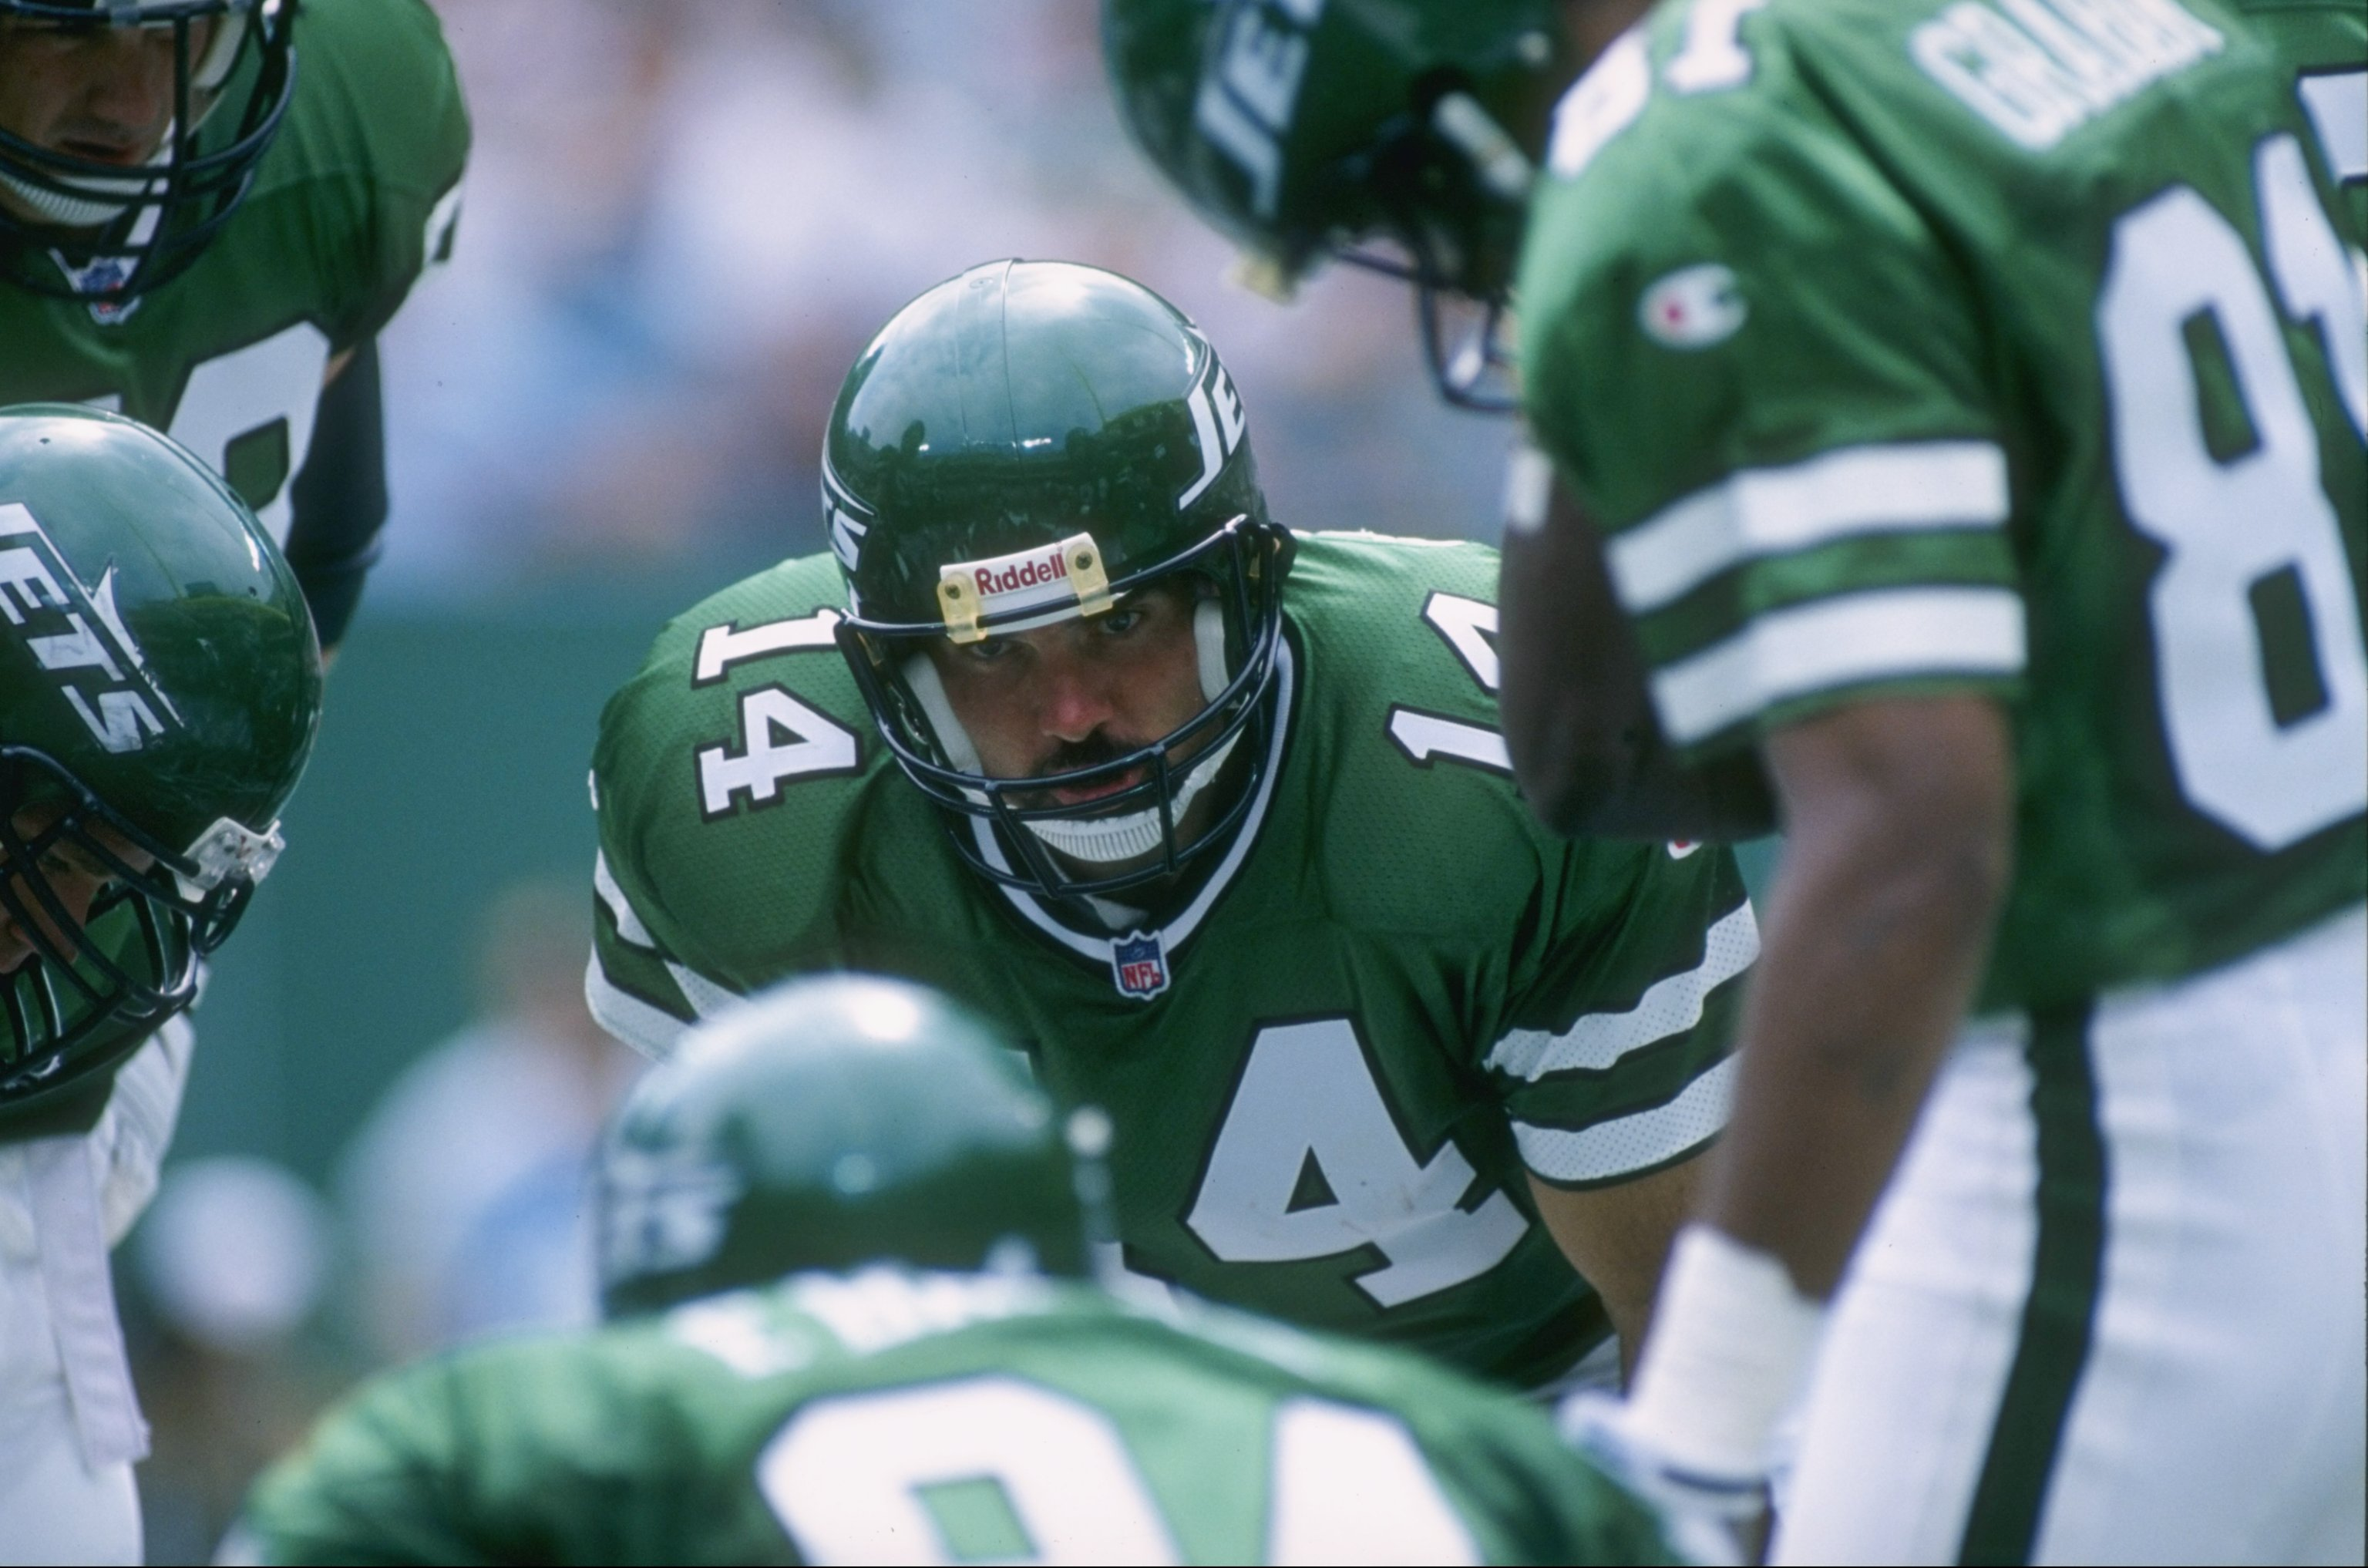 8 Sep 1996: Quarterback Neil O'Donnell #14 of the New York Jets calls the play in an offensive huddle during the Jets 21-7 loss to the Indianapolis Colts at Giants Stadium in East Rutherford, New Jersey.